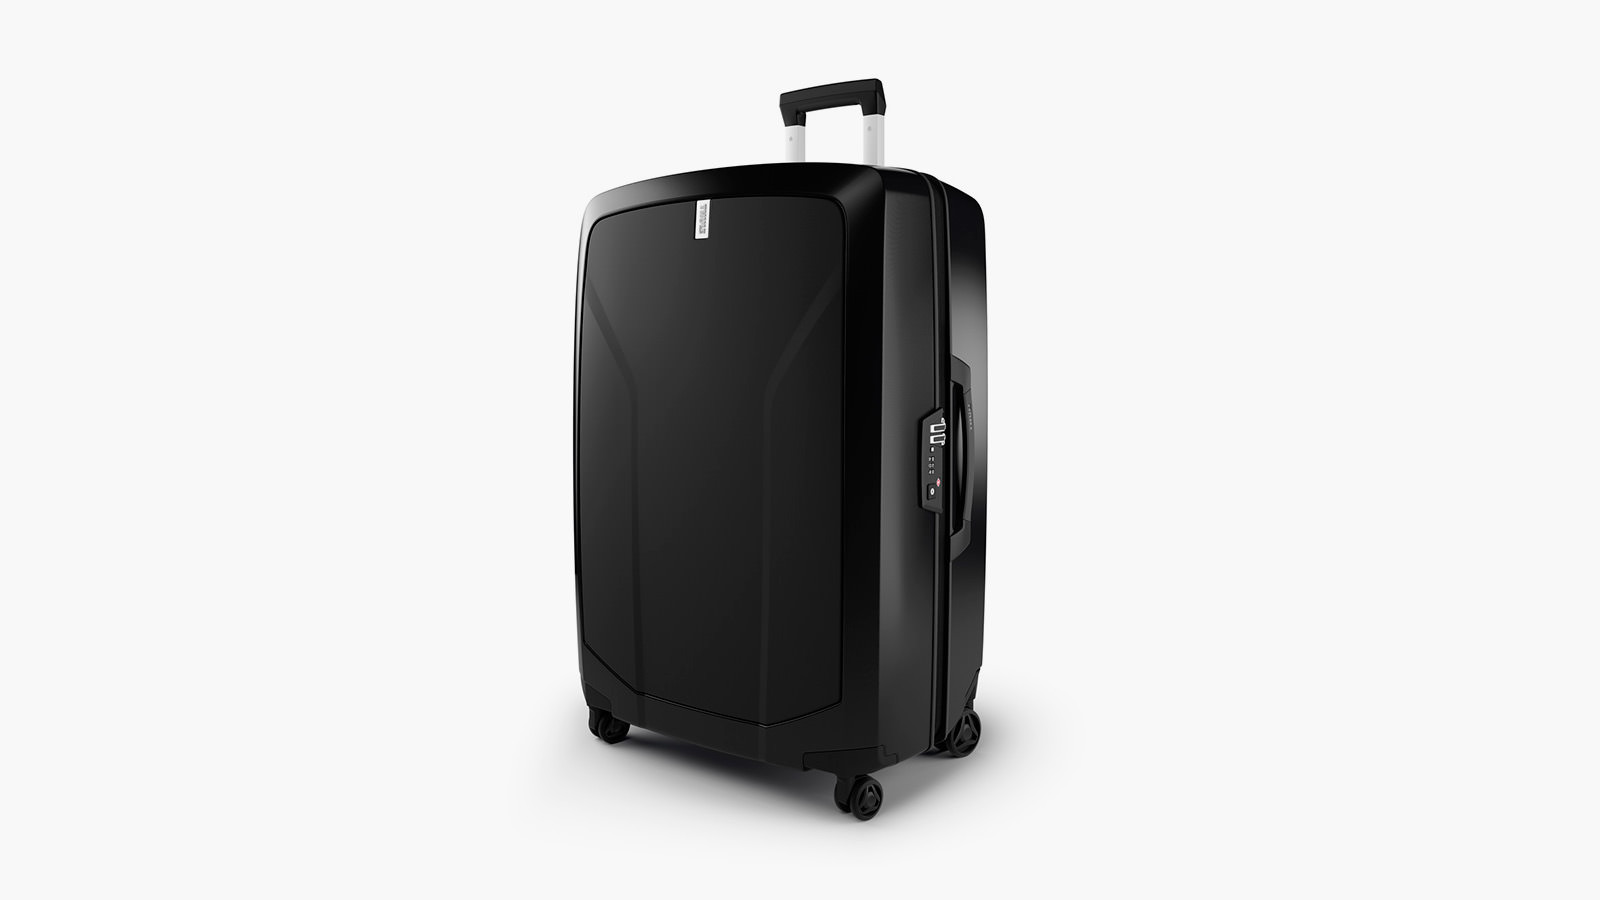 Thule Revolve Hardside Luggage Collection